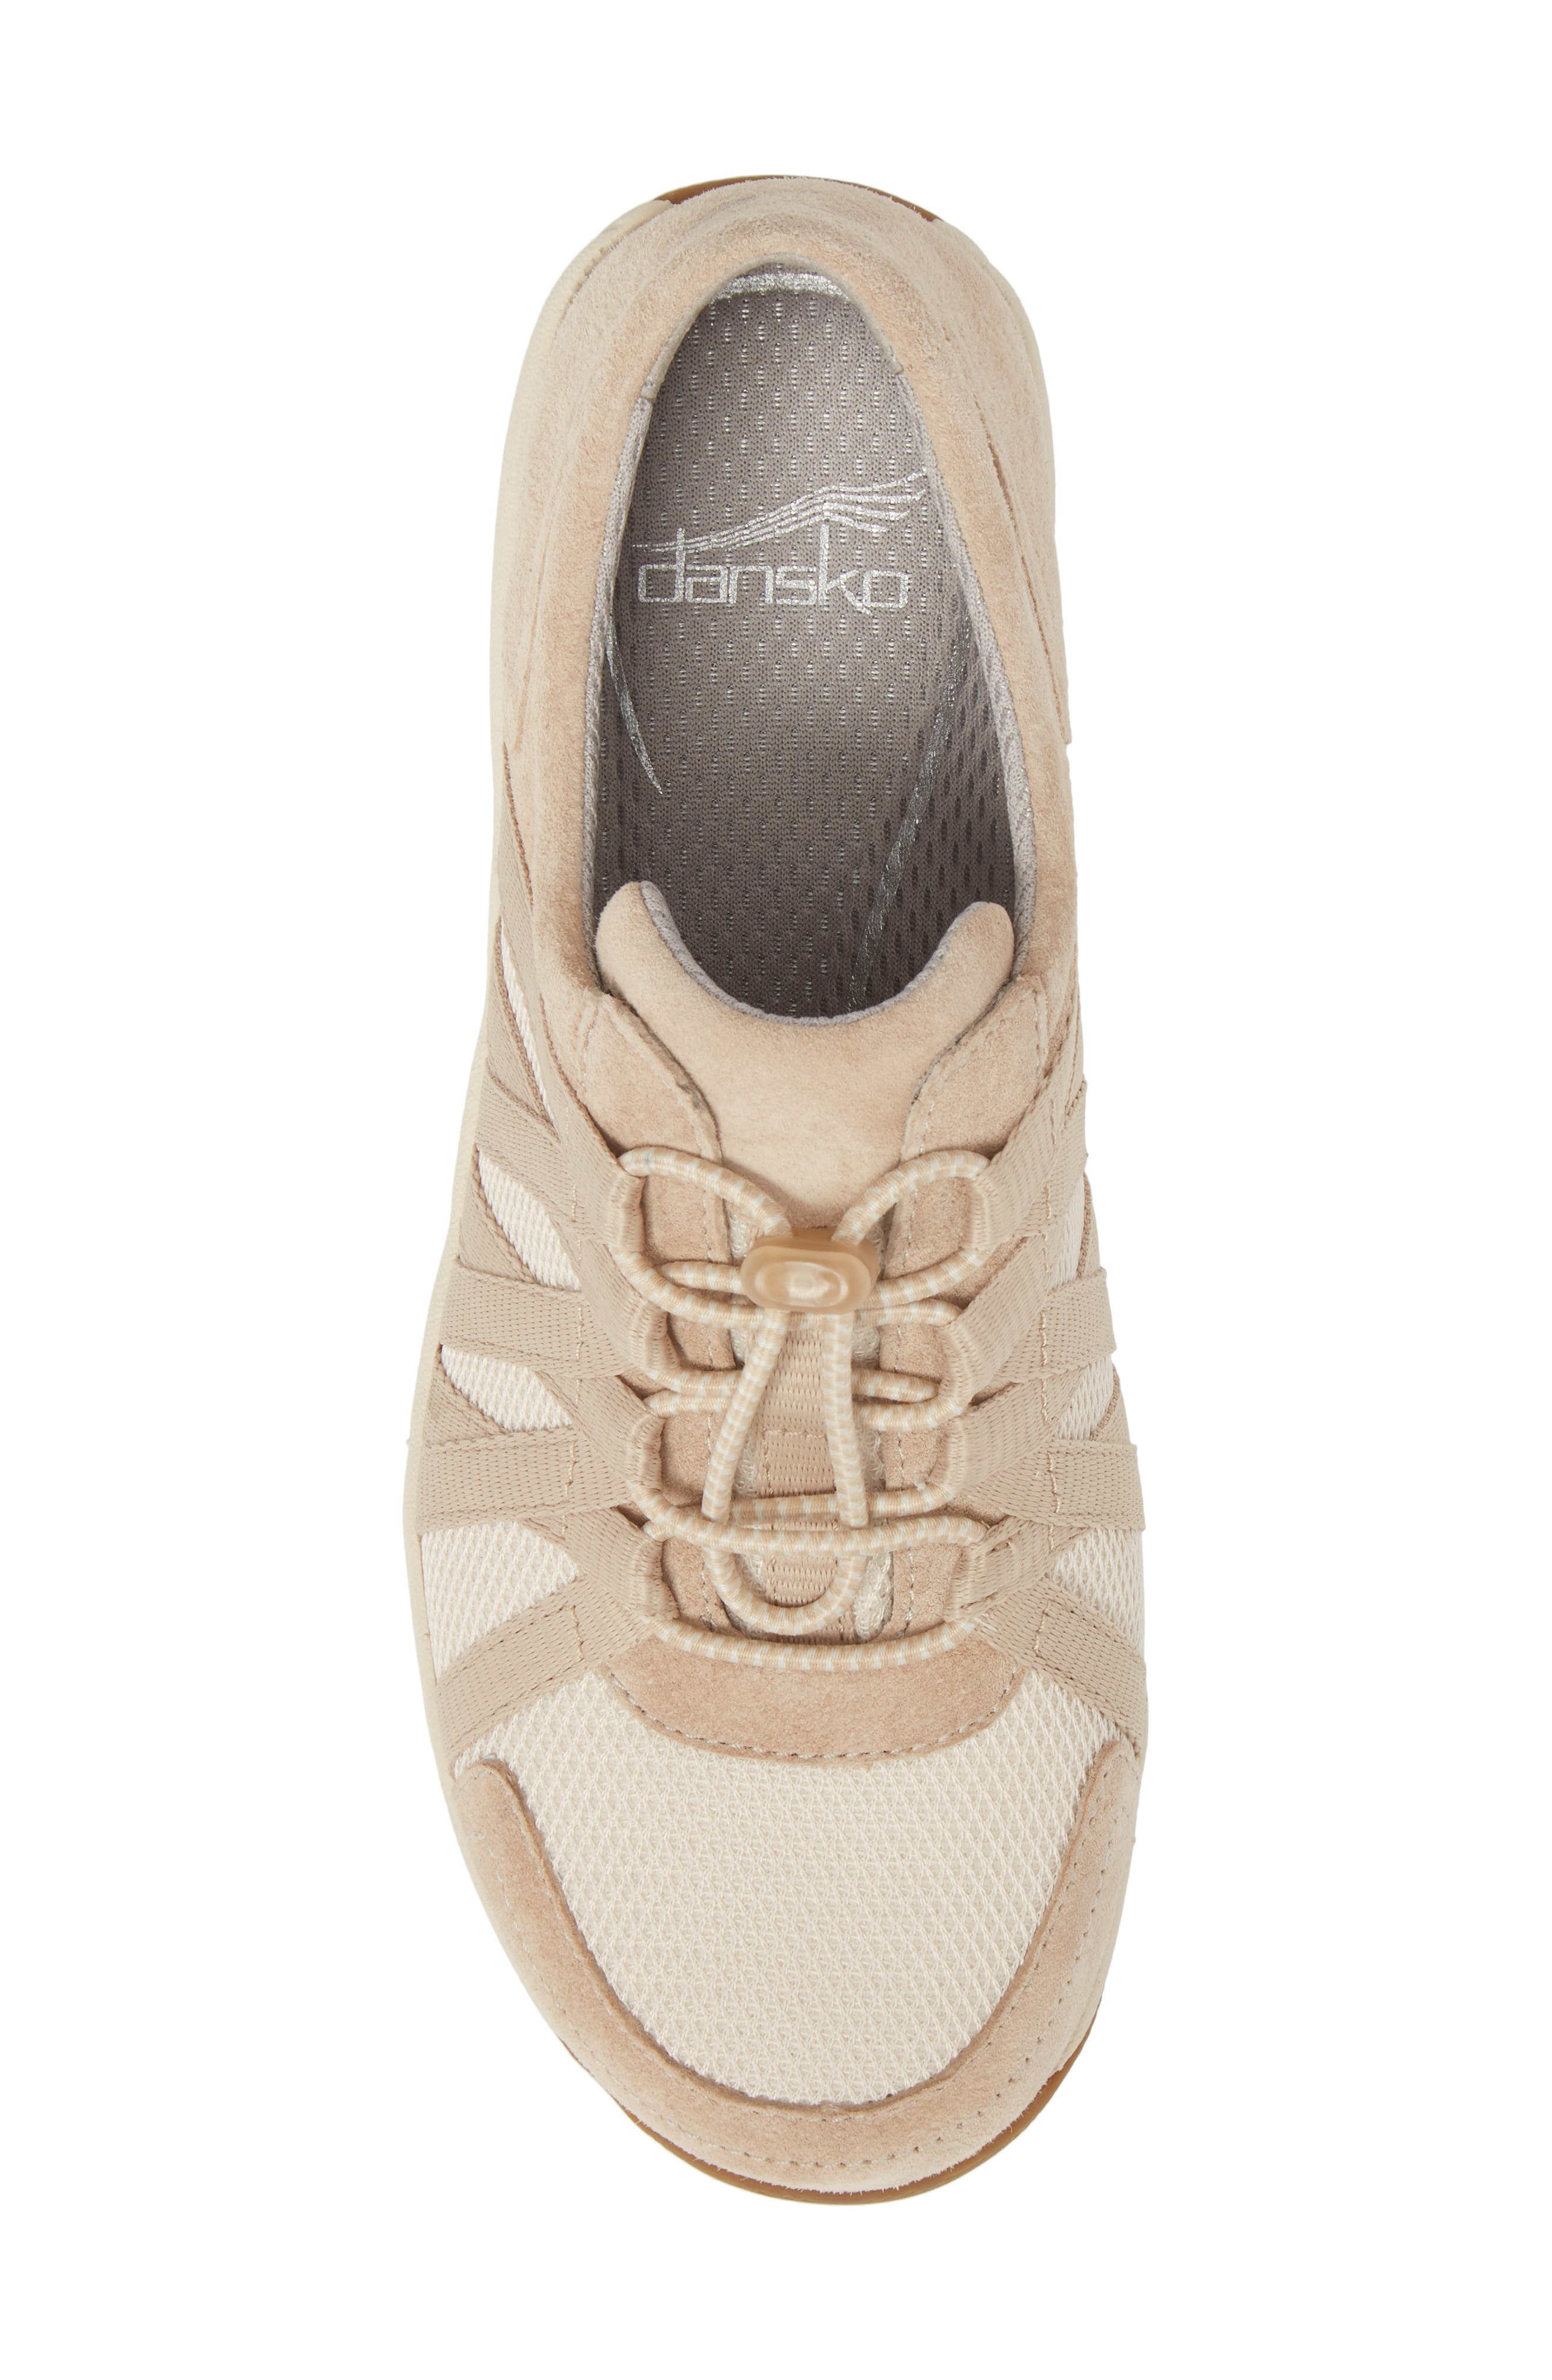 Halifax Collection Honor Sneaker,                             Alternate thumbnail 35, color,